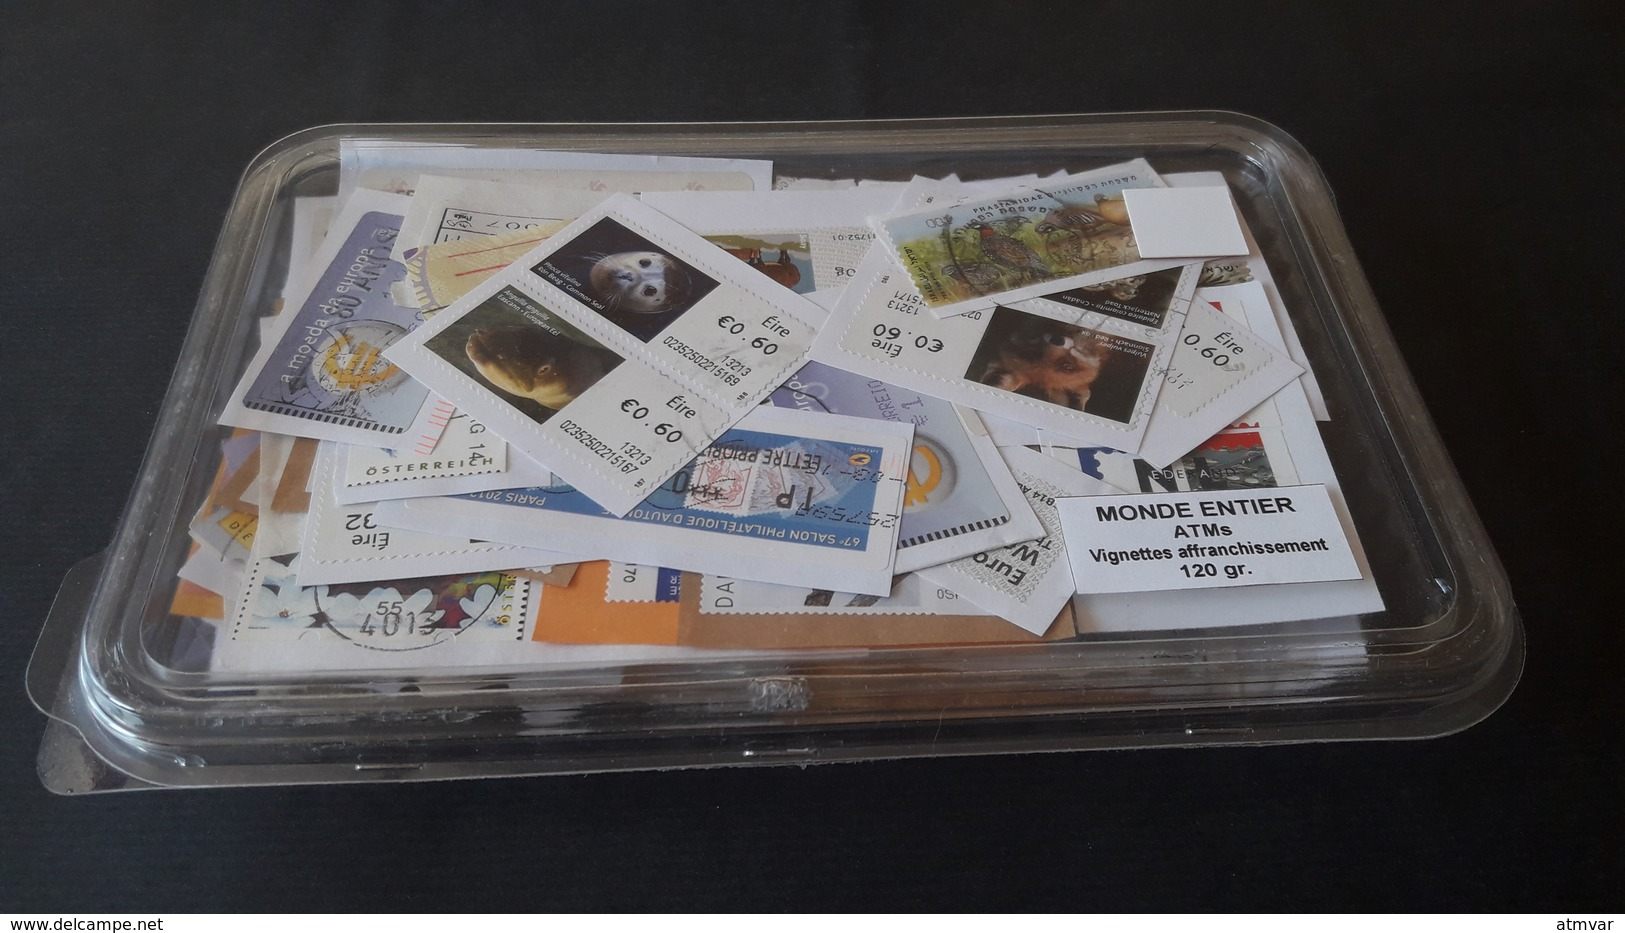 WORLDWIDE - KILOWARE 120 G. ATM - Sellos Usados, Con Papel / Used Stamps, On Paper / Timbres Oblitérés, Sur Papier - Sellos